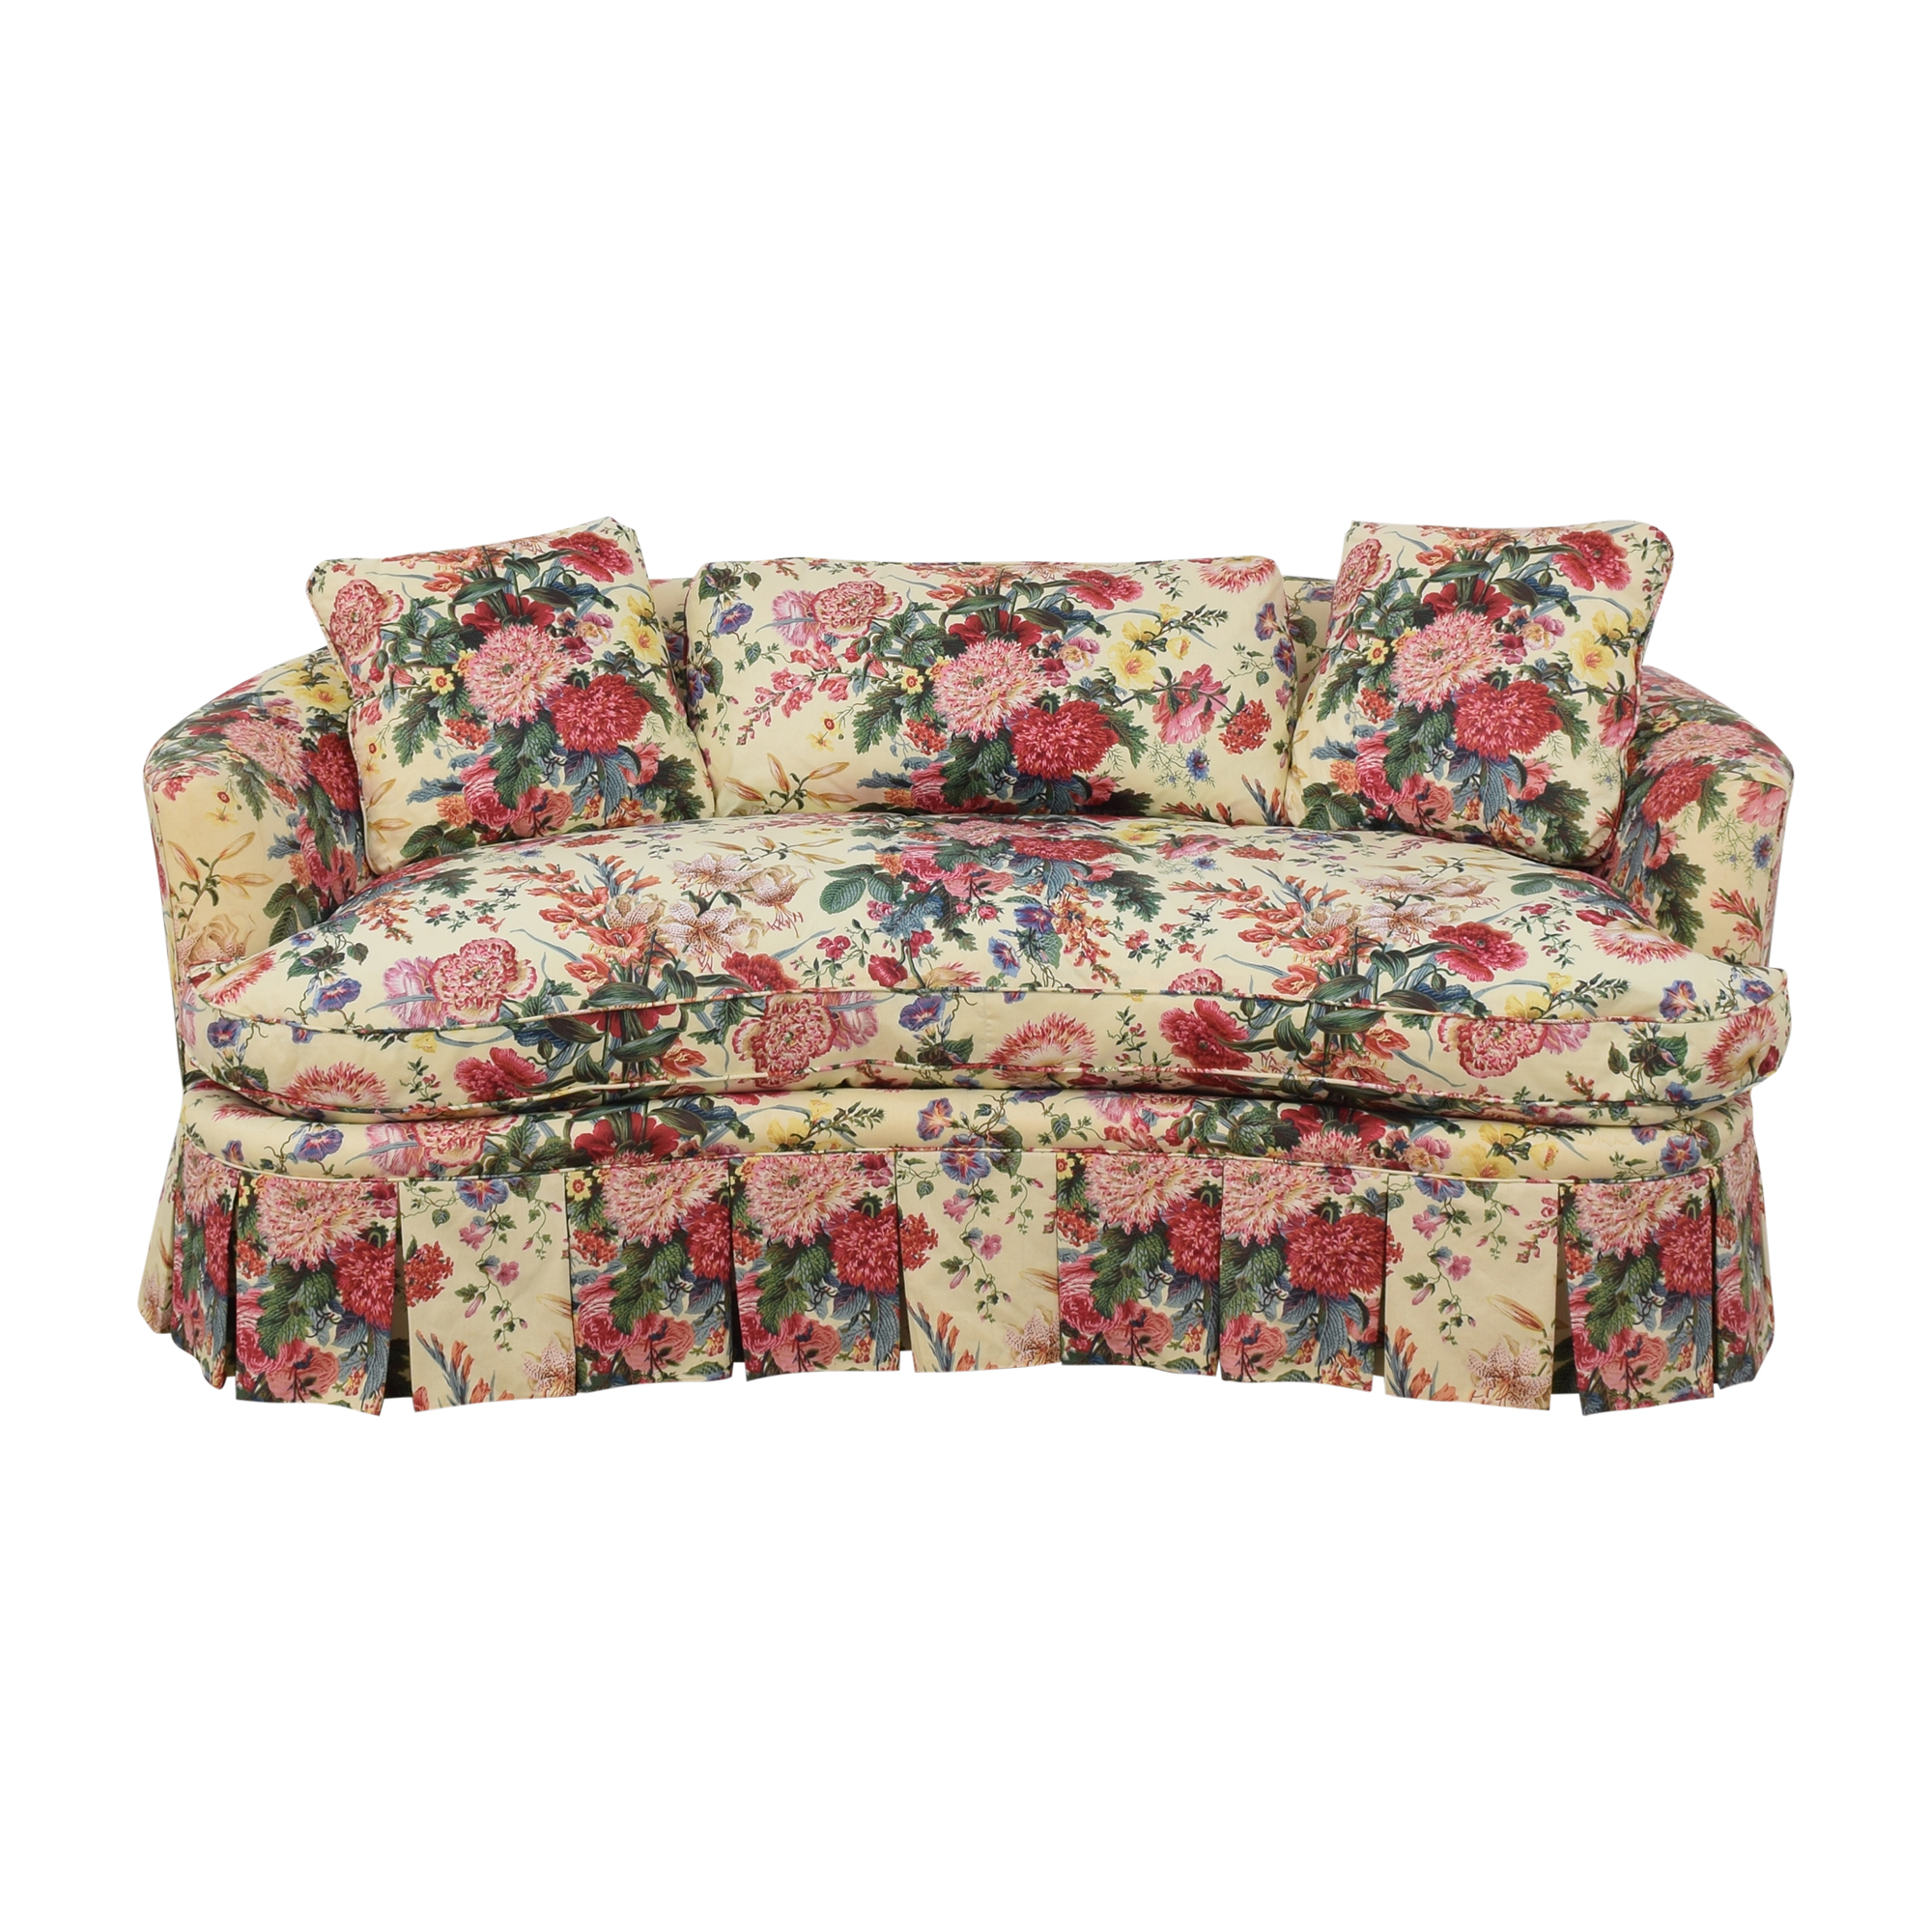 Floral Curved Sofa on sale